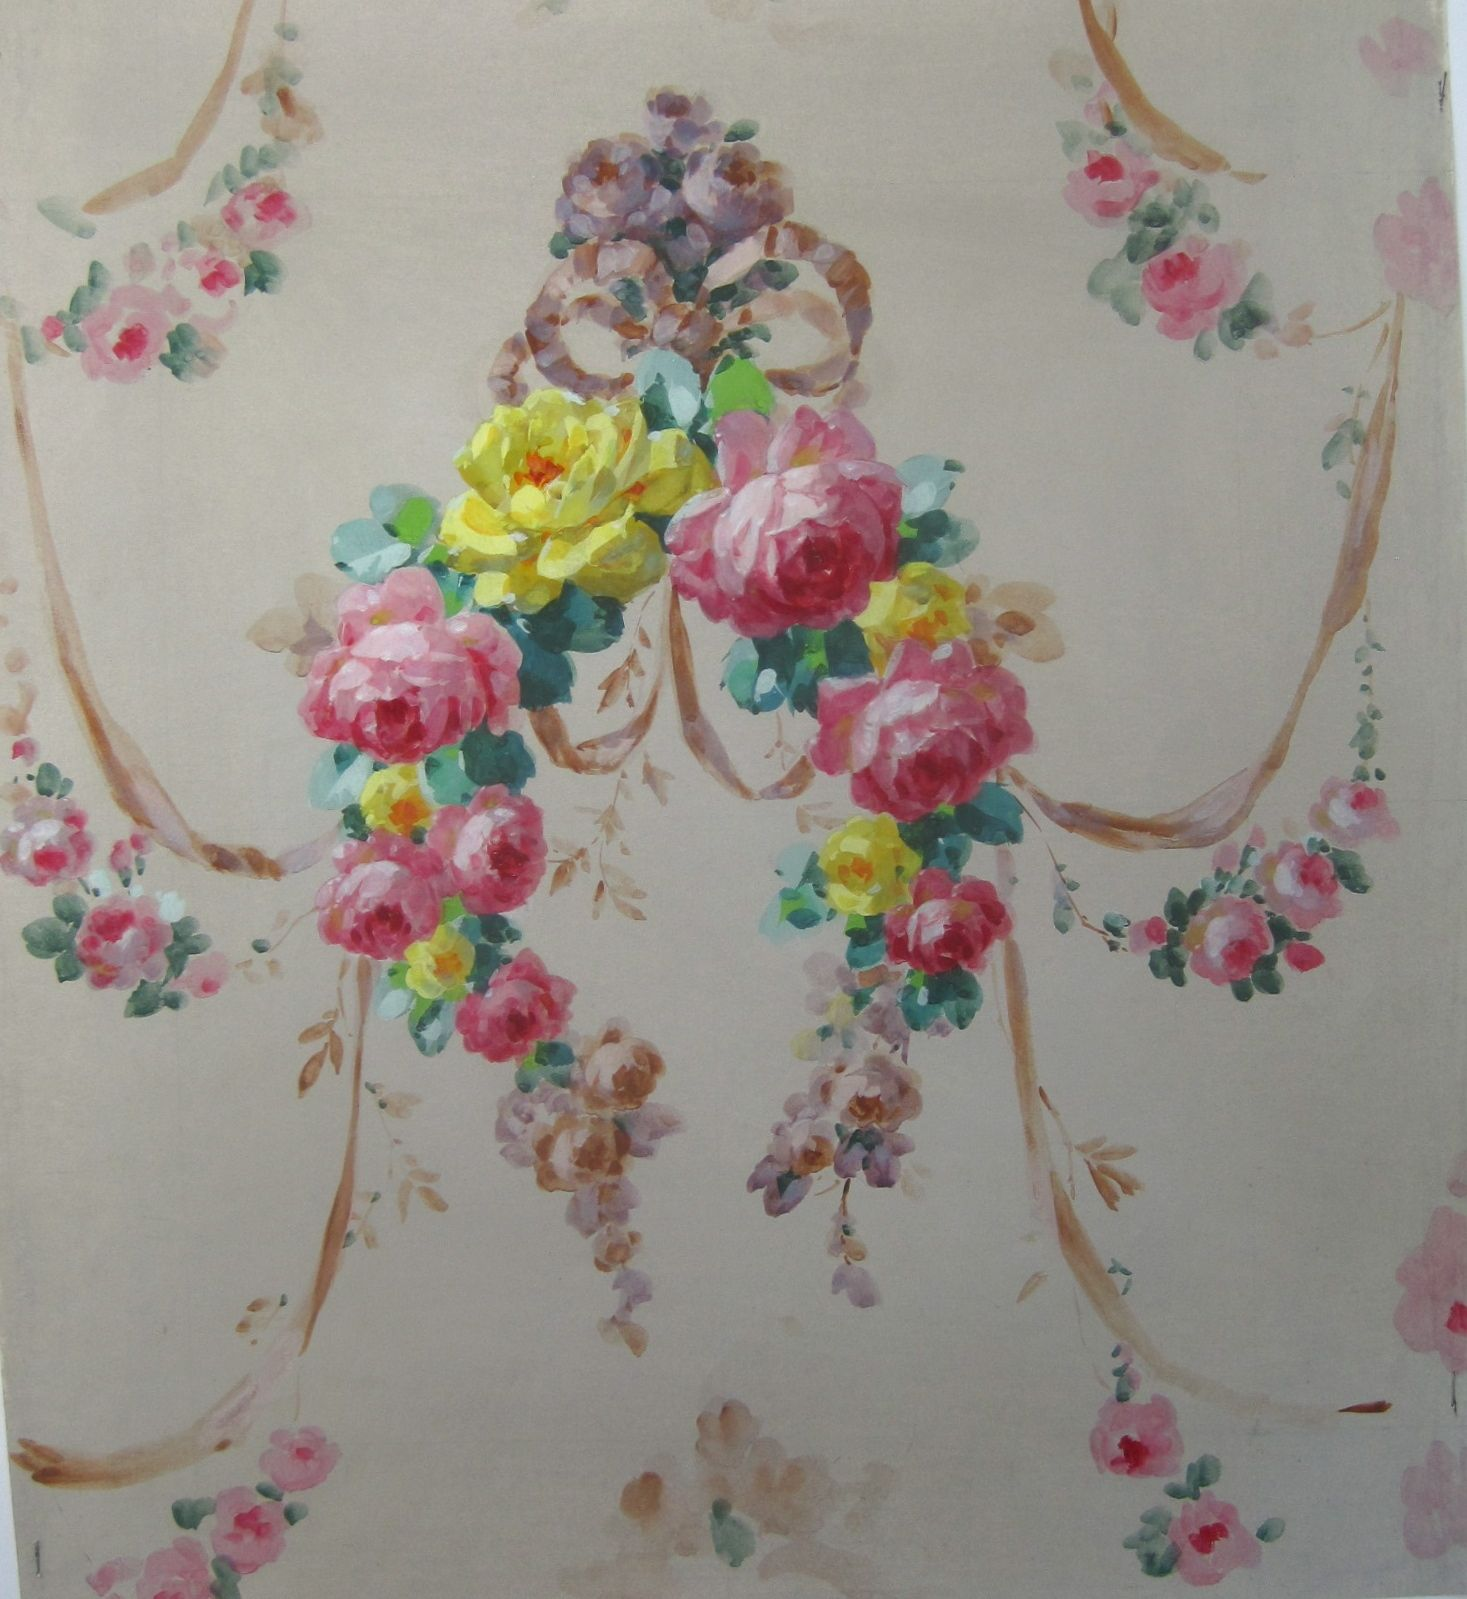 19th Century French Wallpaper Design Roses in Gouache